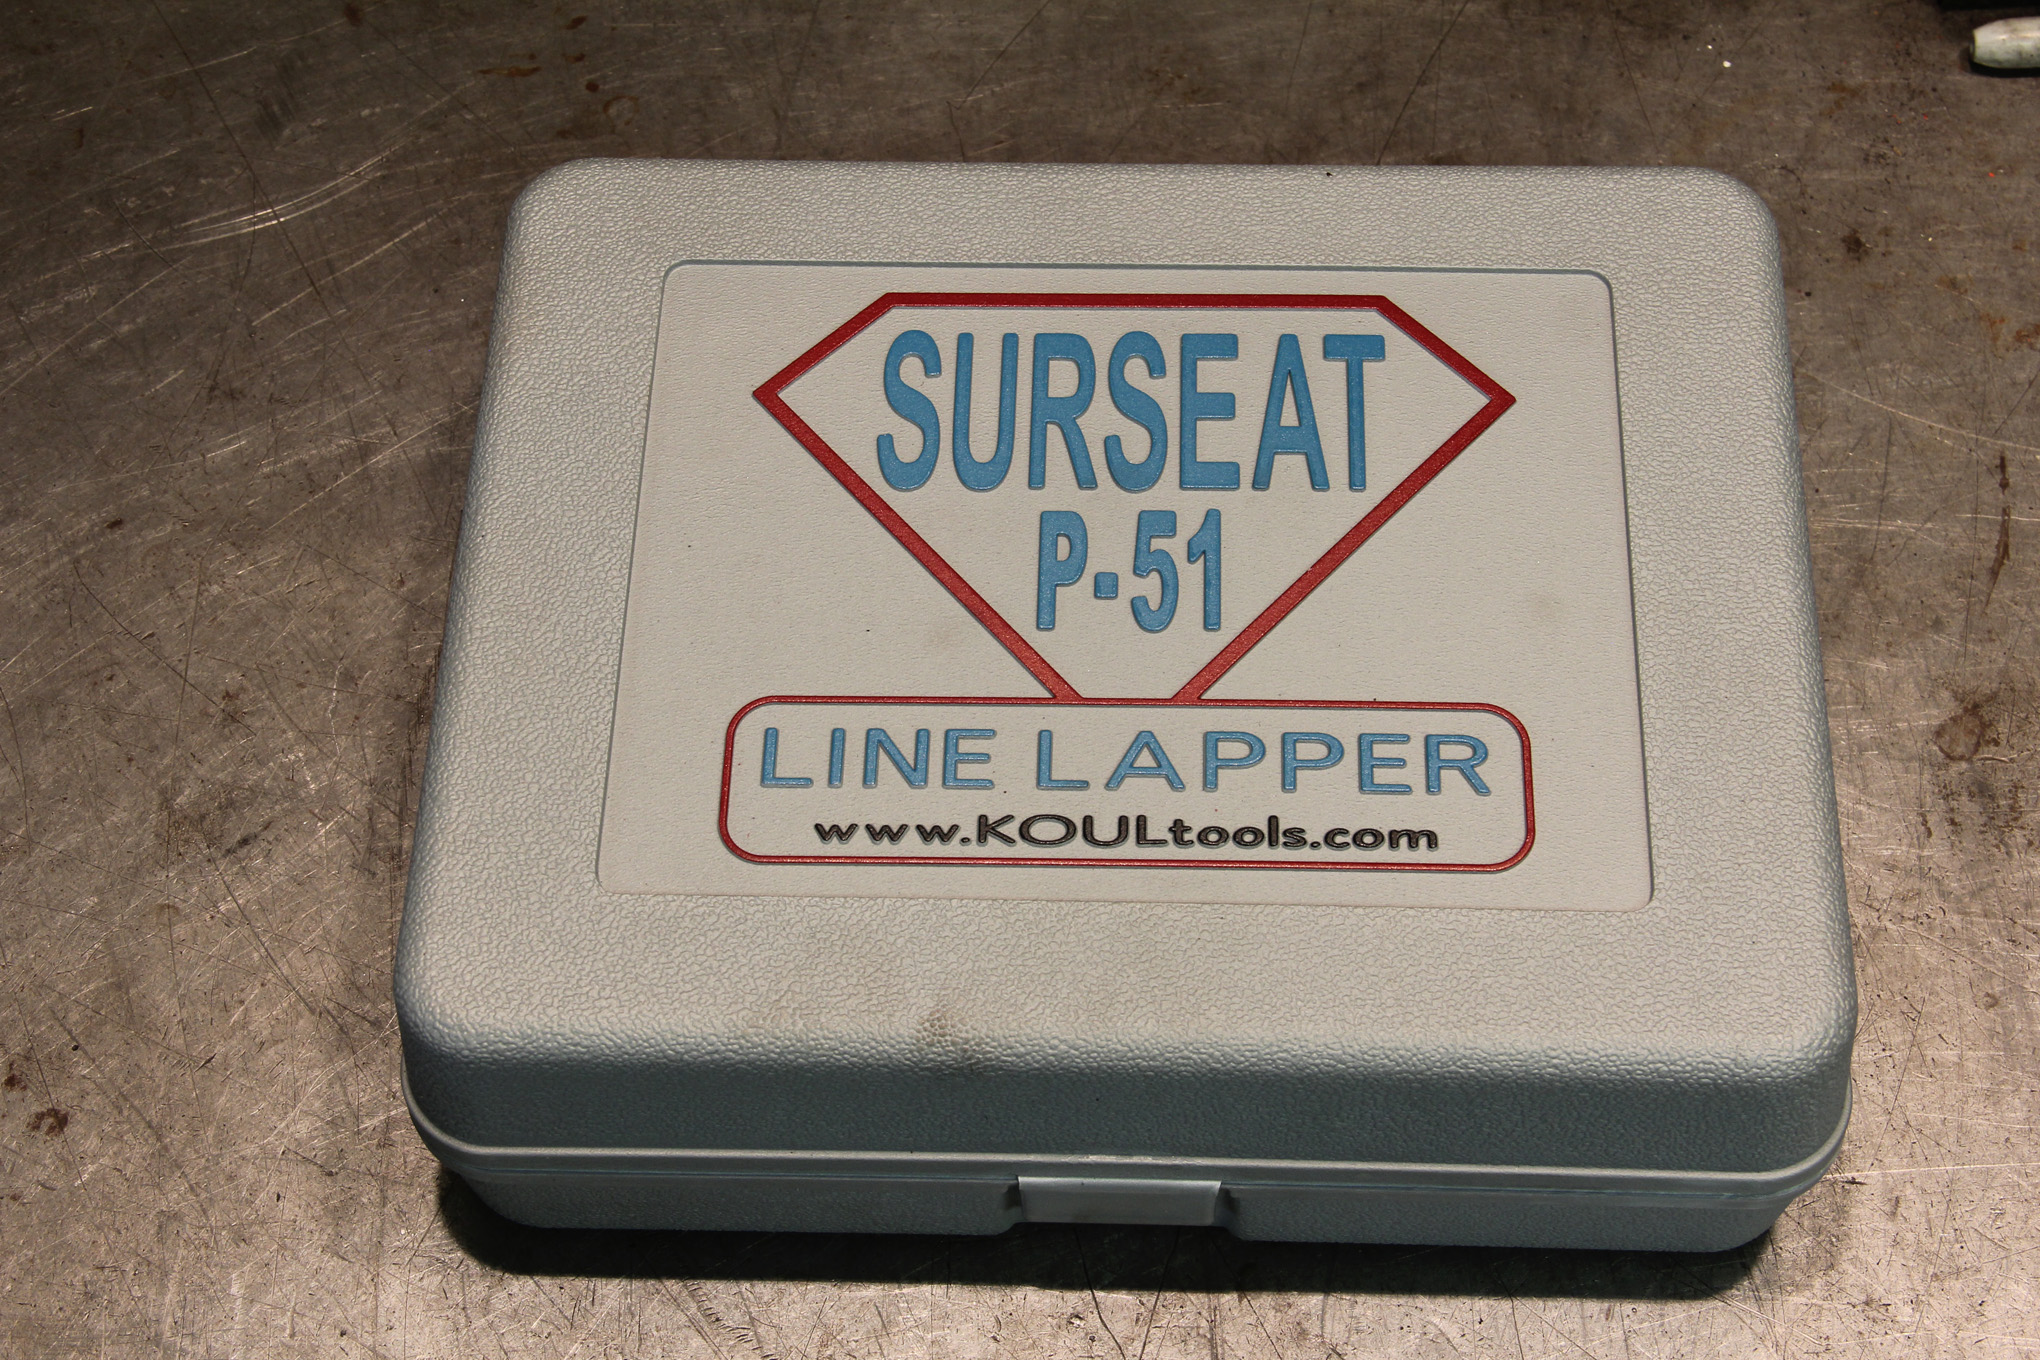 The Koul Tools line lapper, called the Surseat, comes in a handy carrying/storage case. This kit is the P-51.